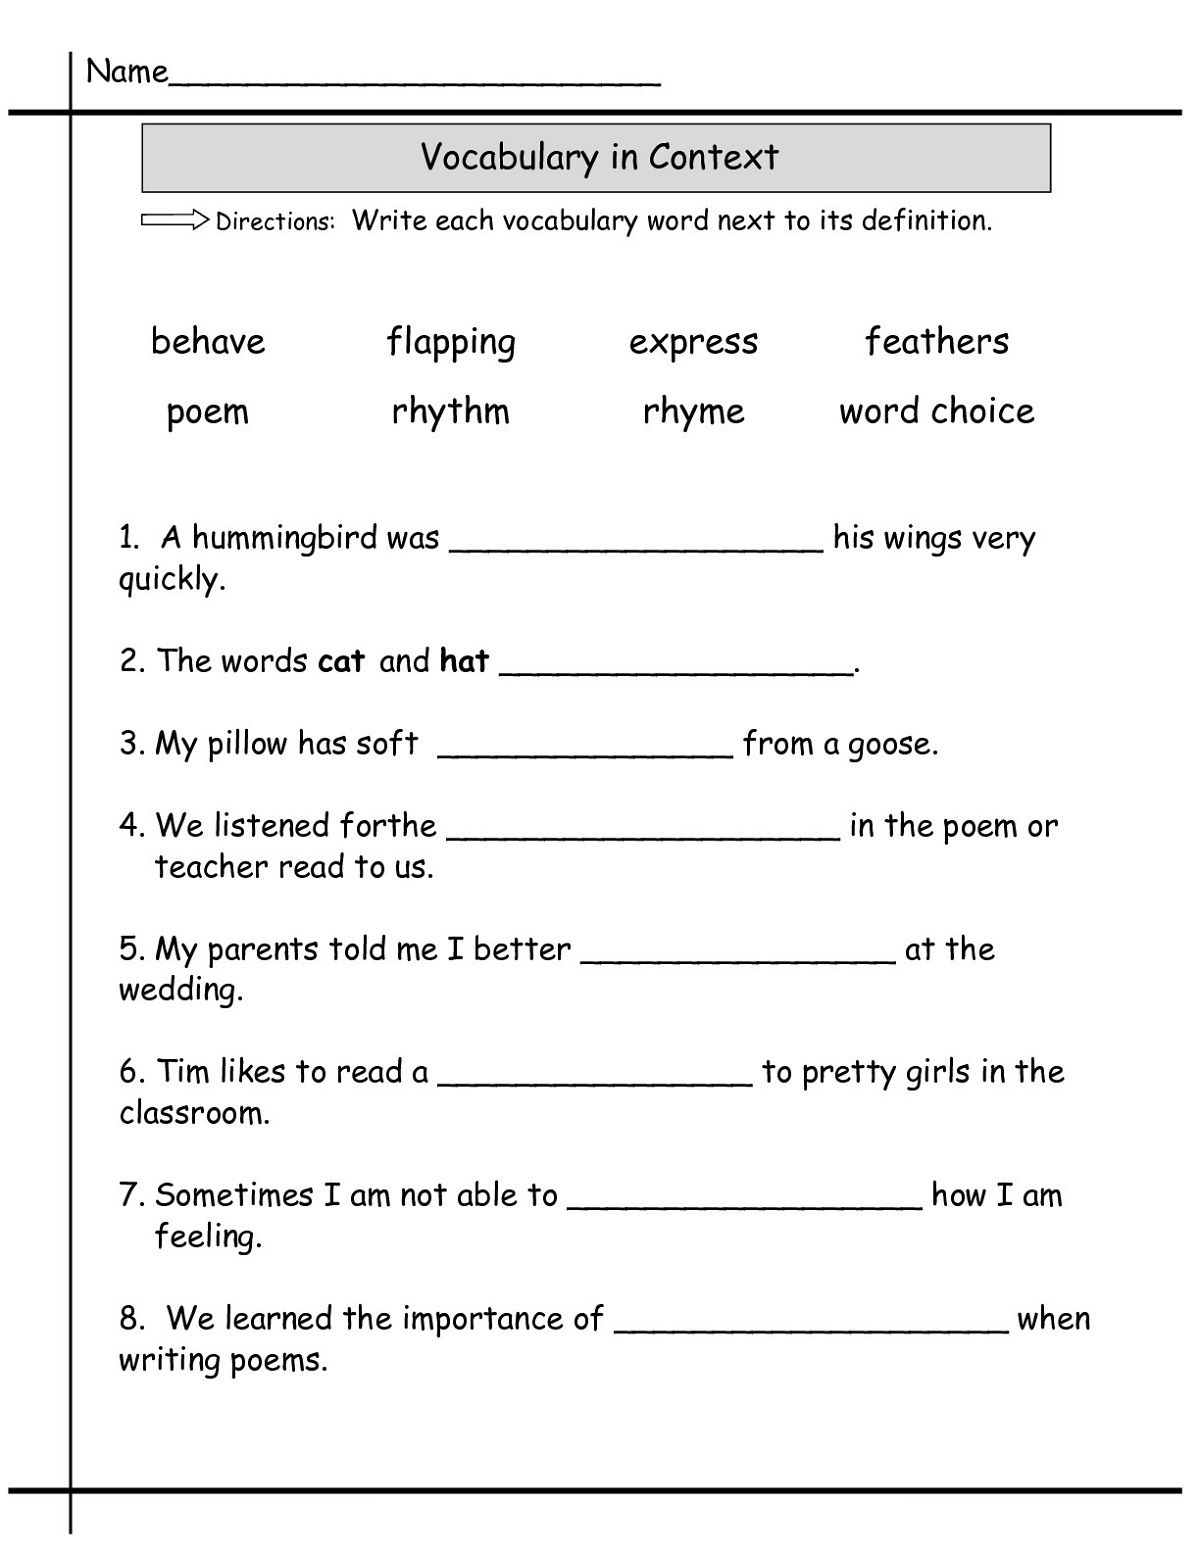 hight resolution of https://dubaikhalifas.com/printable-free-grammar-worksheets-second-grade-2-punctuation-negative-contractions-english/